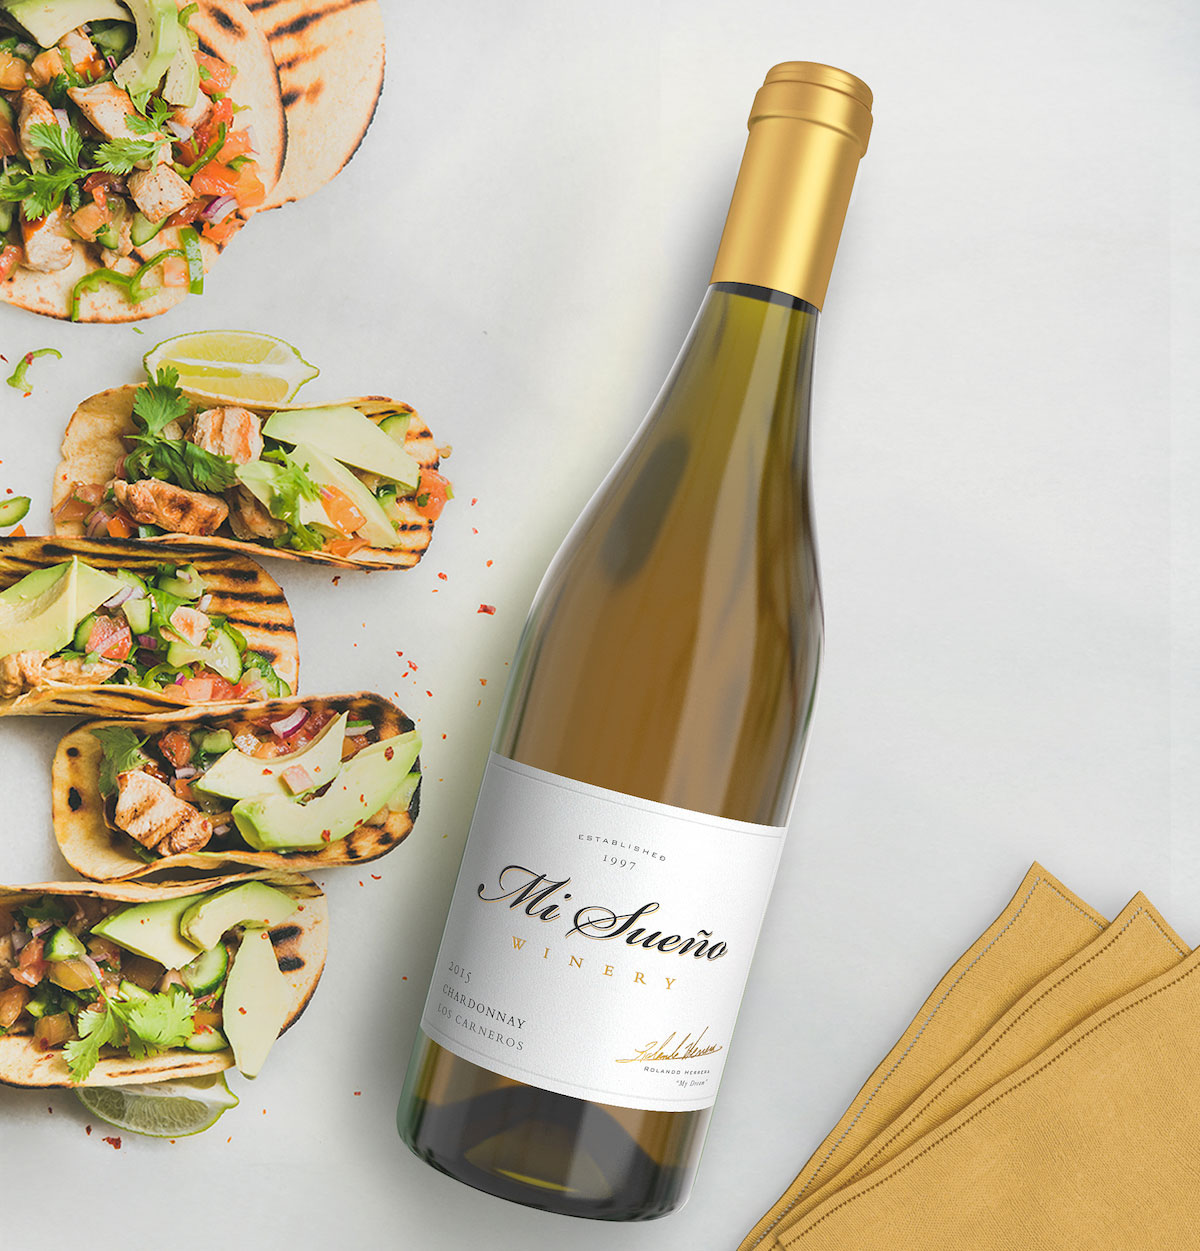 Tacos and Chardonnay are a match made in heaven!